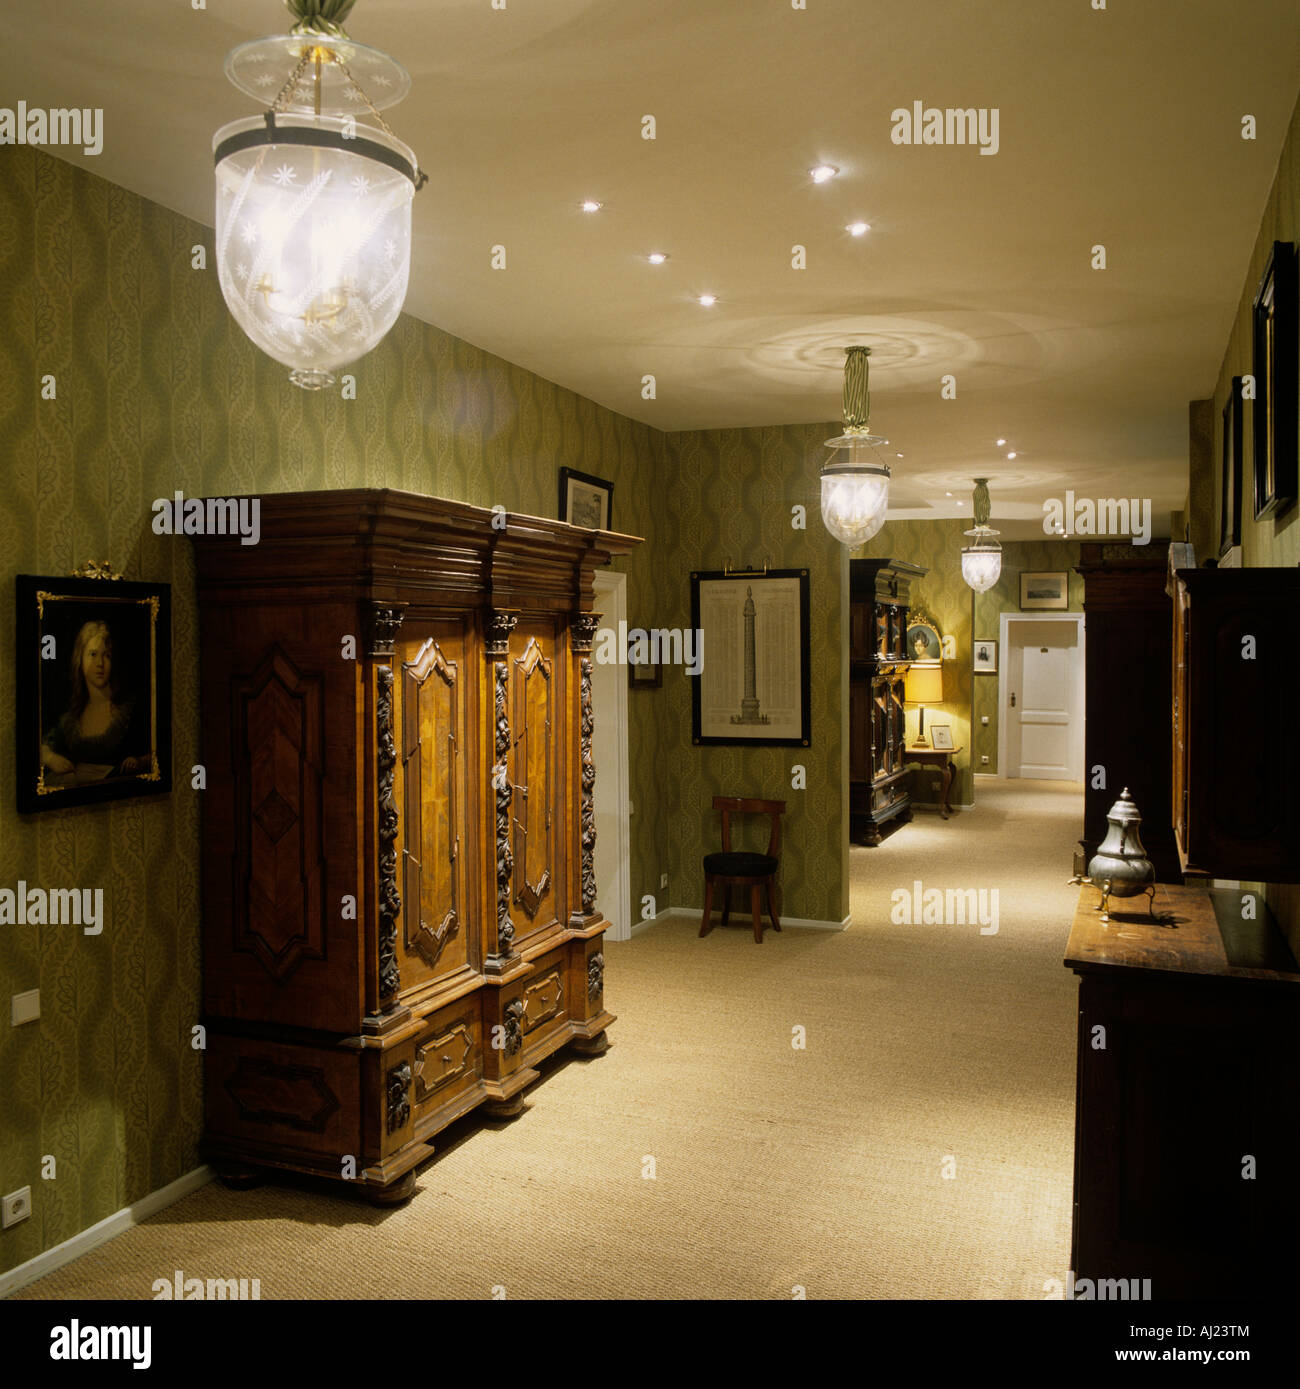 Marvelous Corridor Hallway With Antique Wardrobe And Old Fashioned Ceiling Inspirational Interior Design Netriciaus